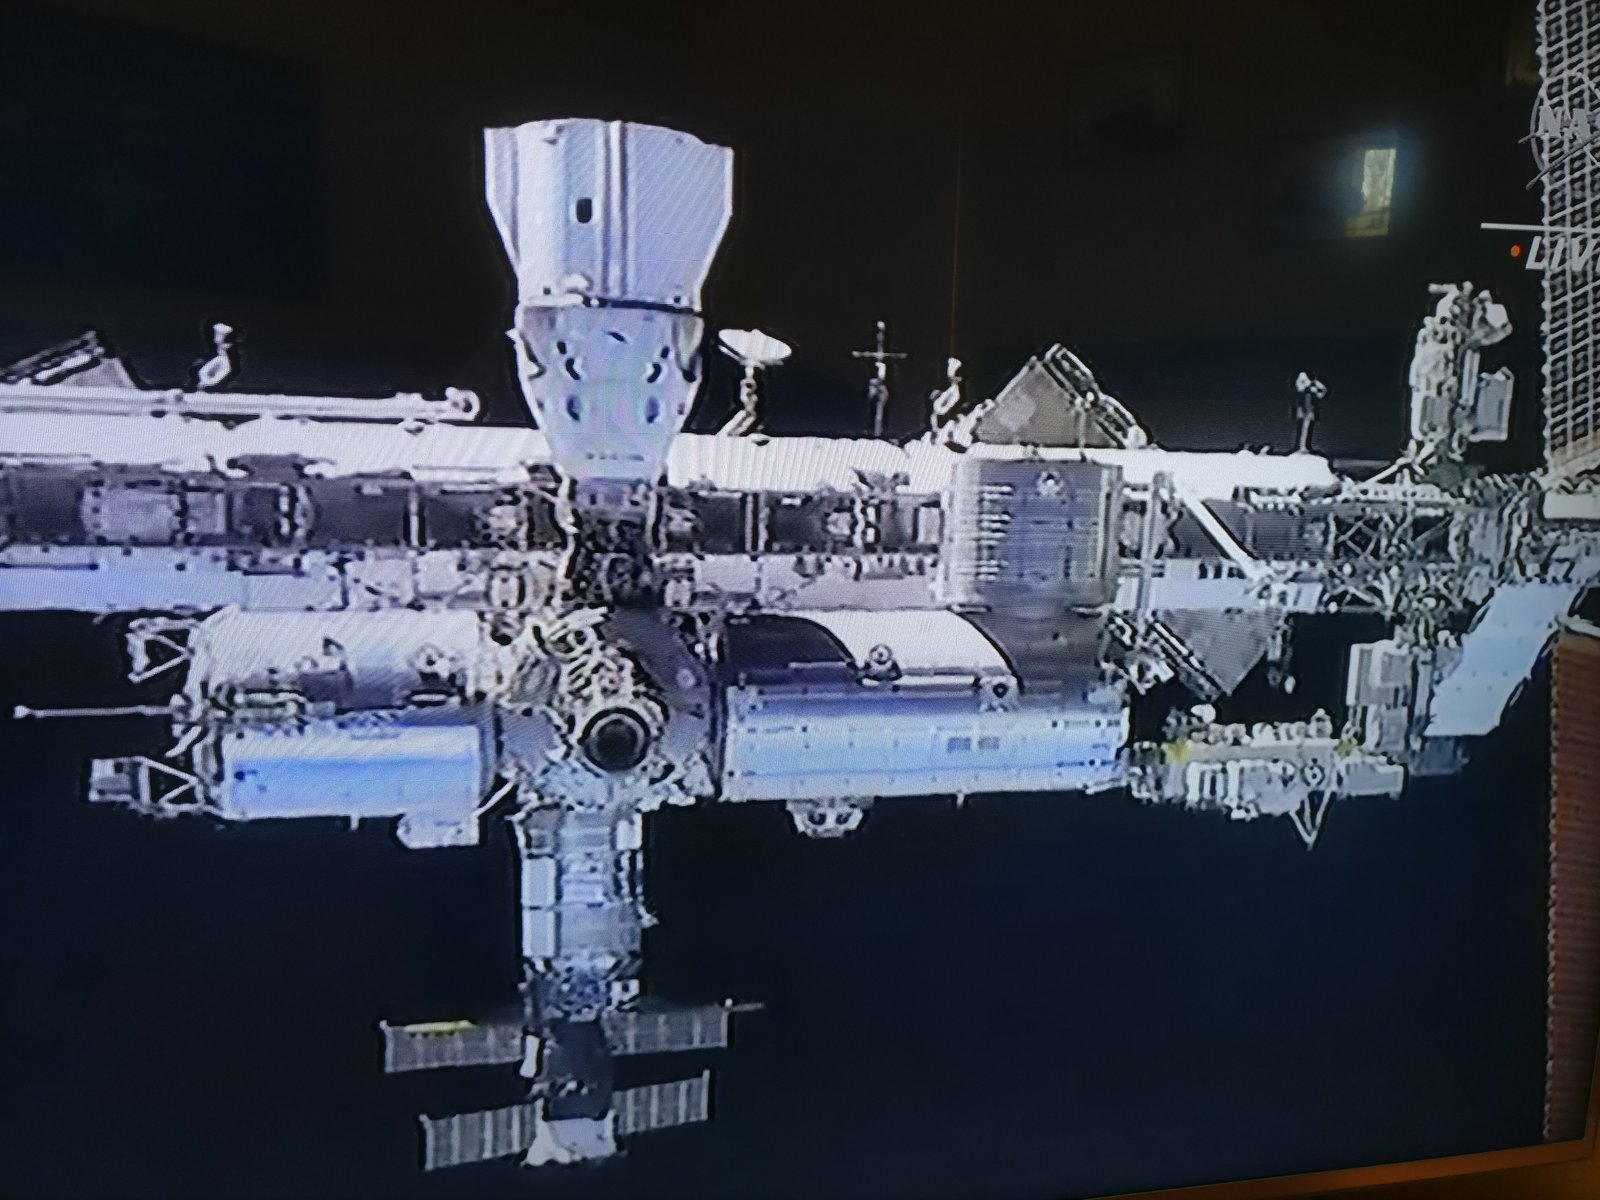 Station iss